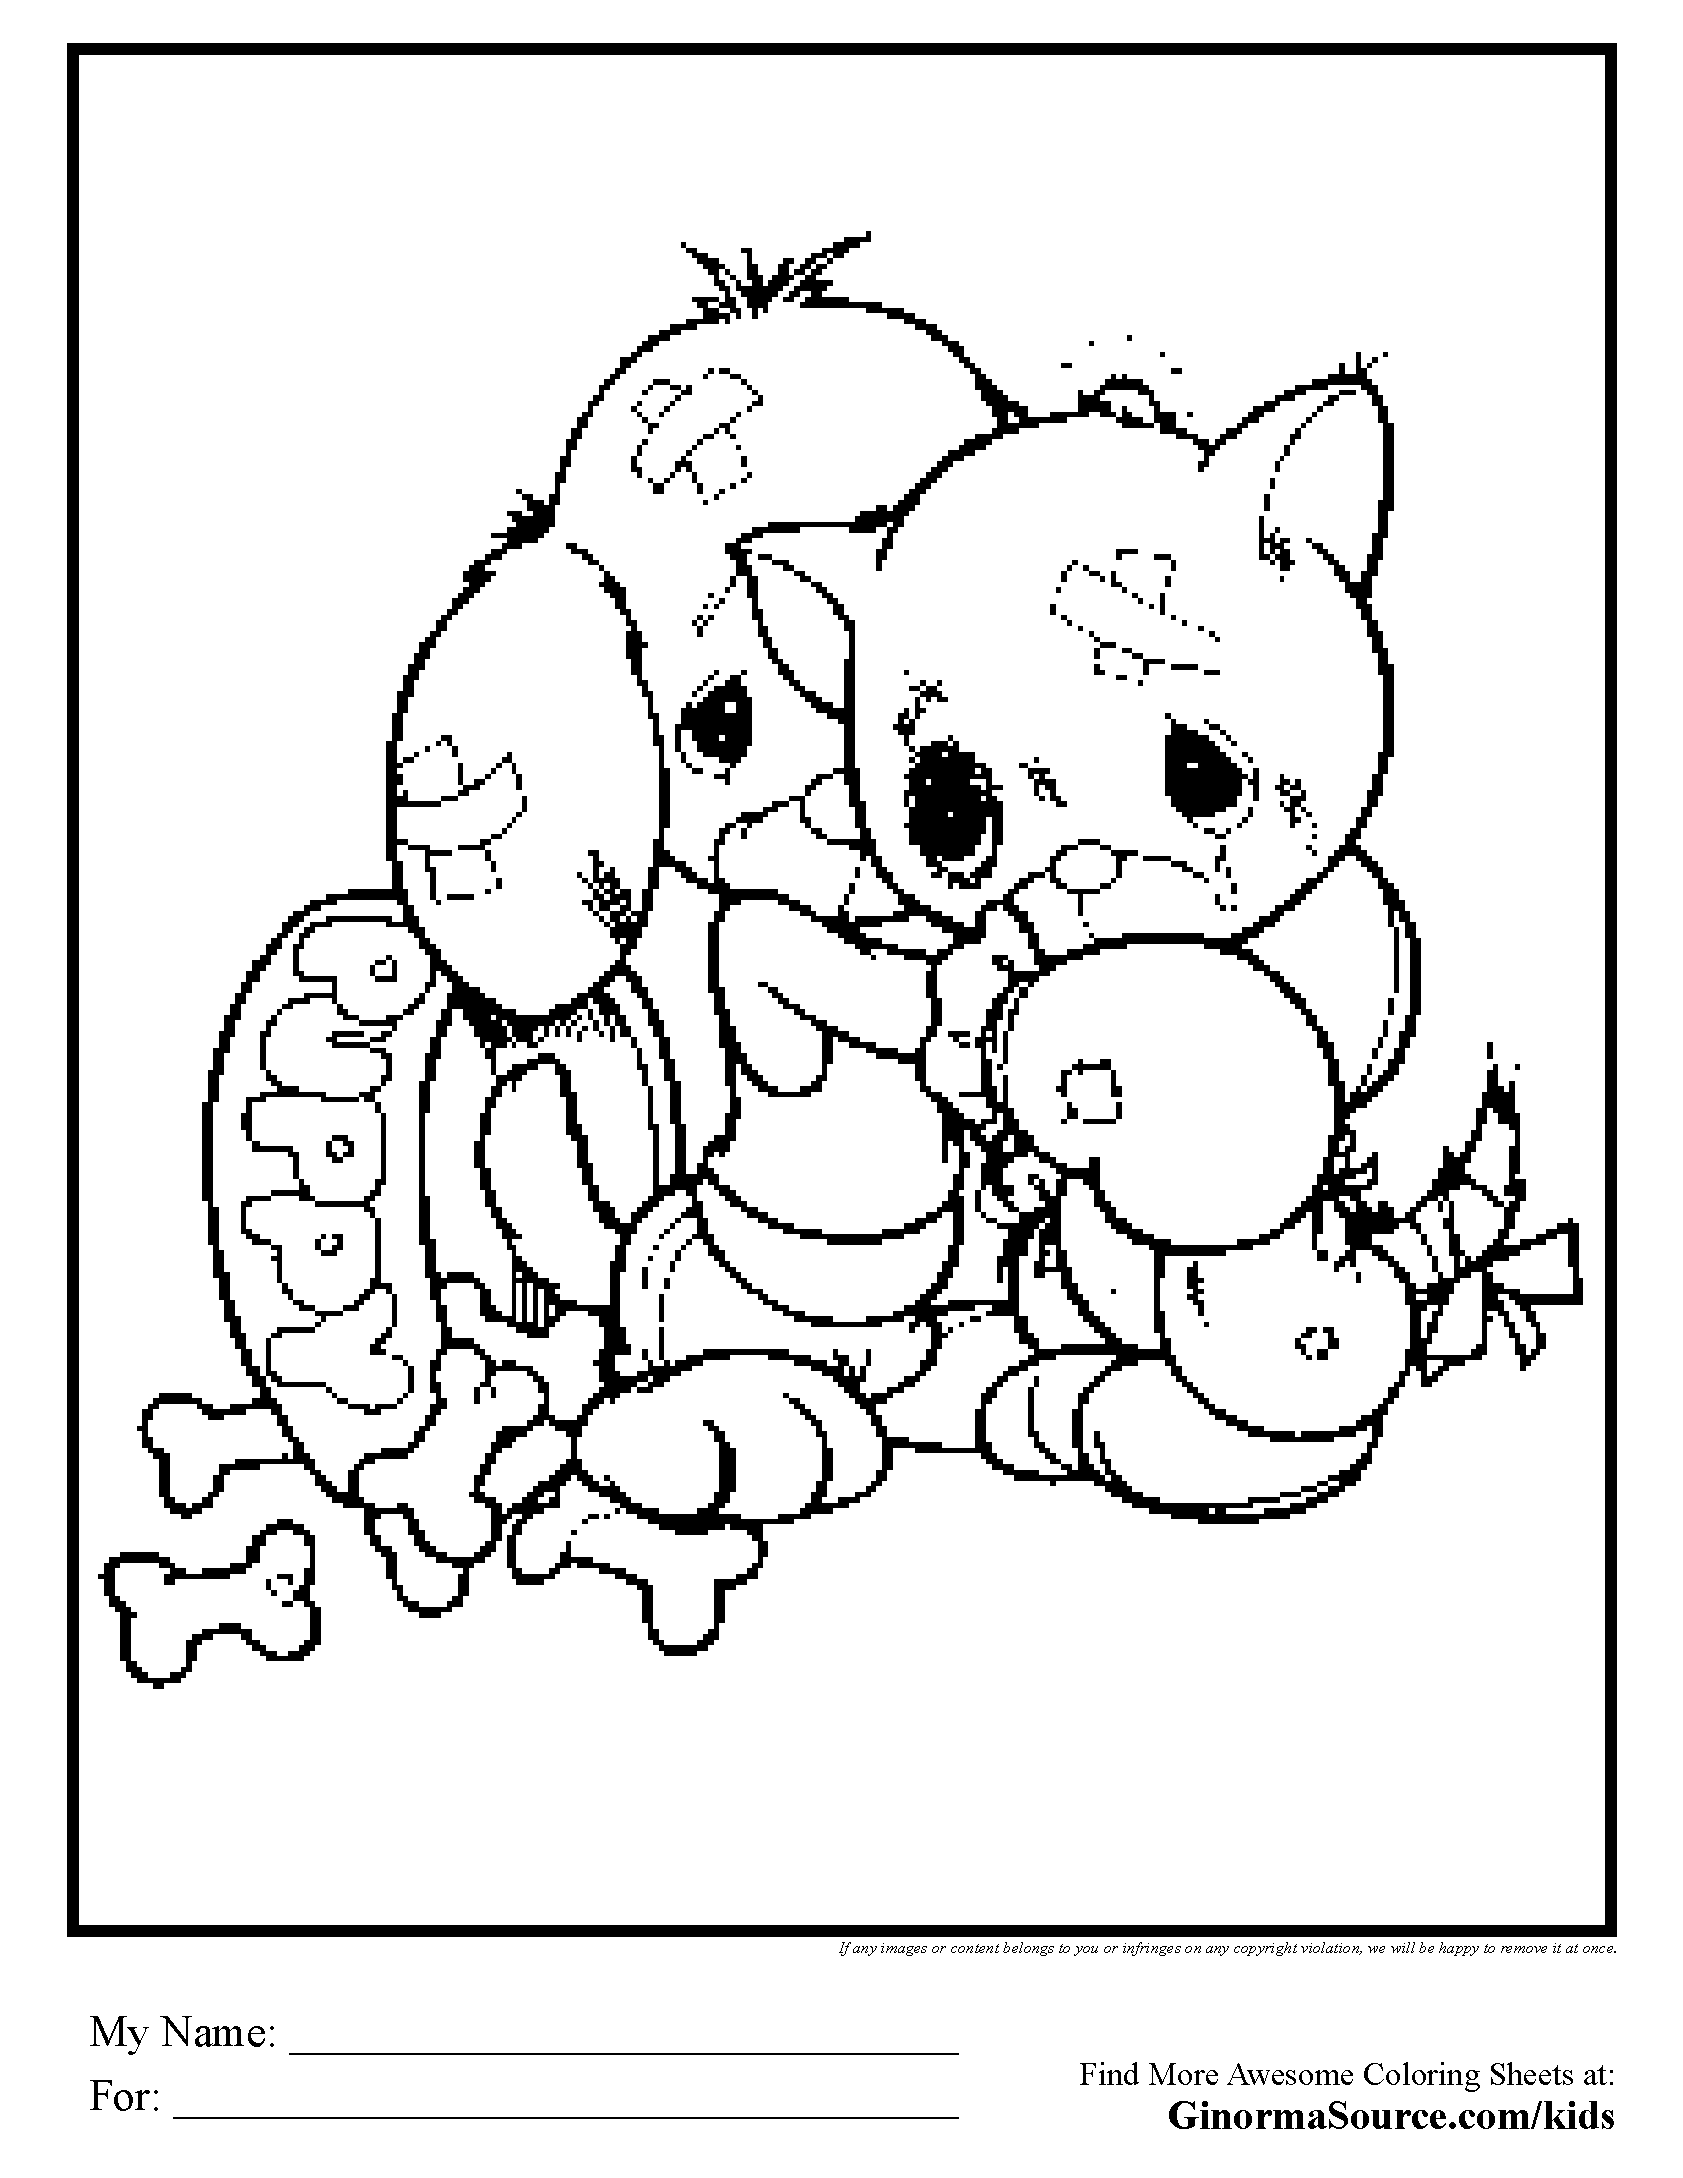 Advanced Puppy Coloring Pages - Coloring Pages For All Ages